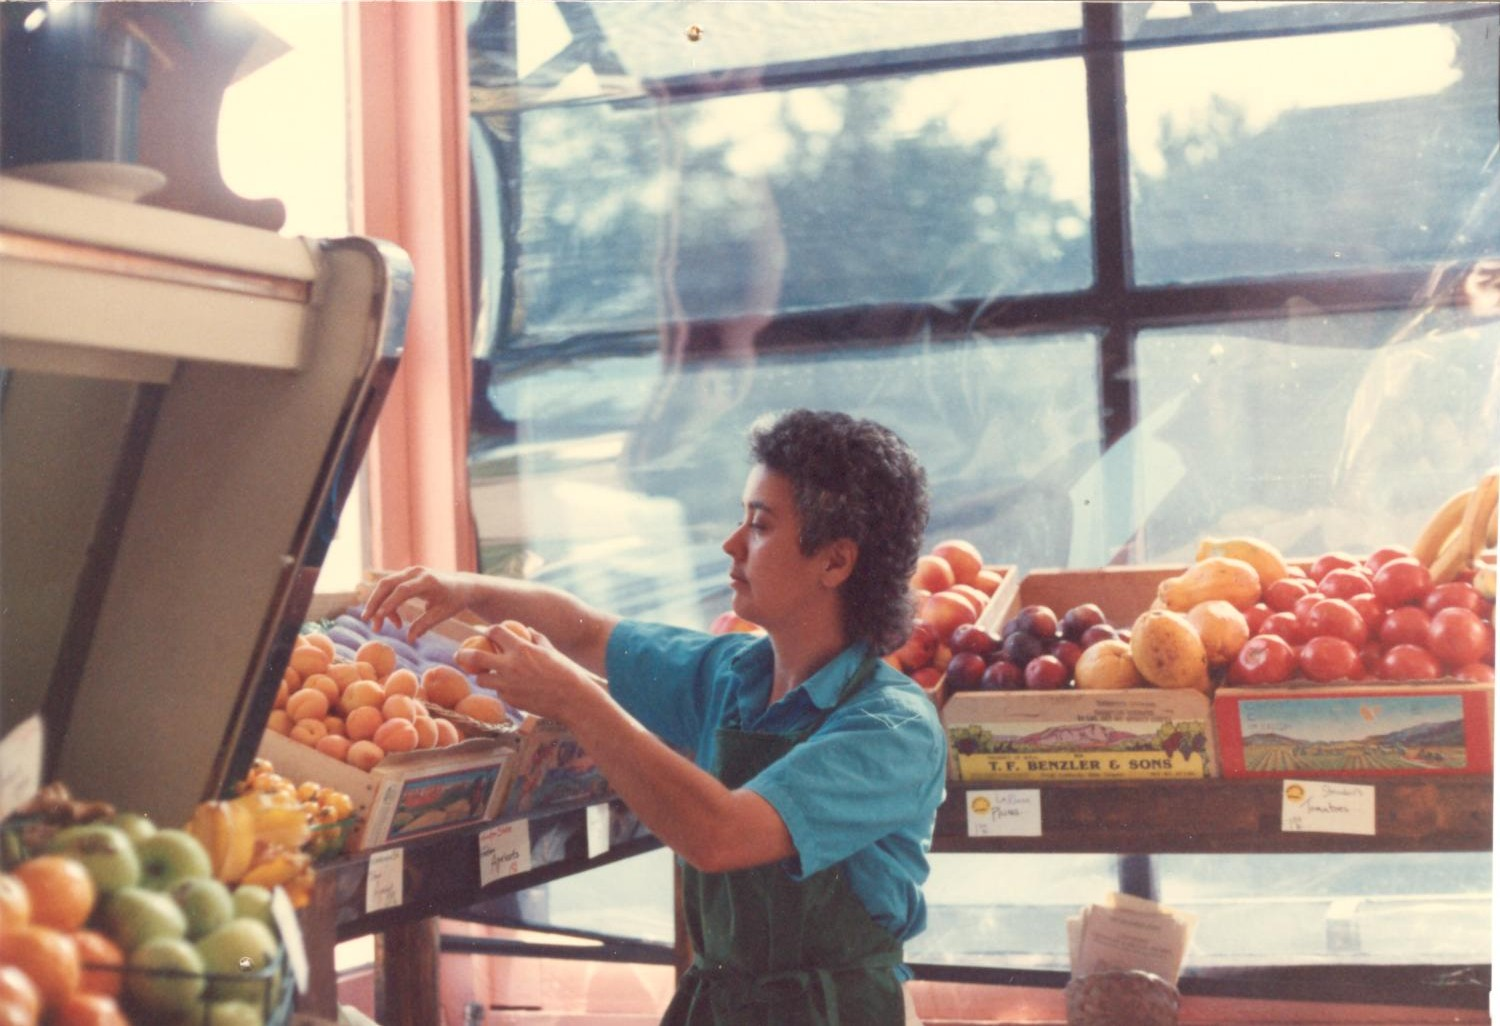 1987- Kathy setting up produce 001.jpg